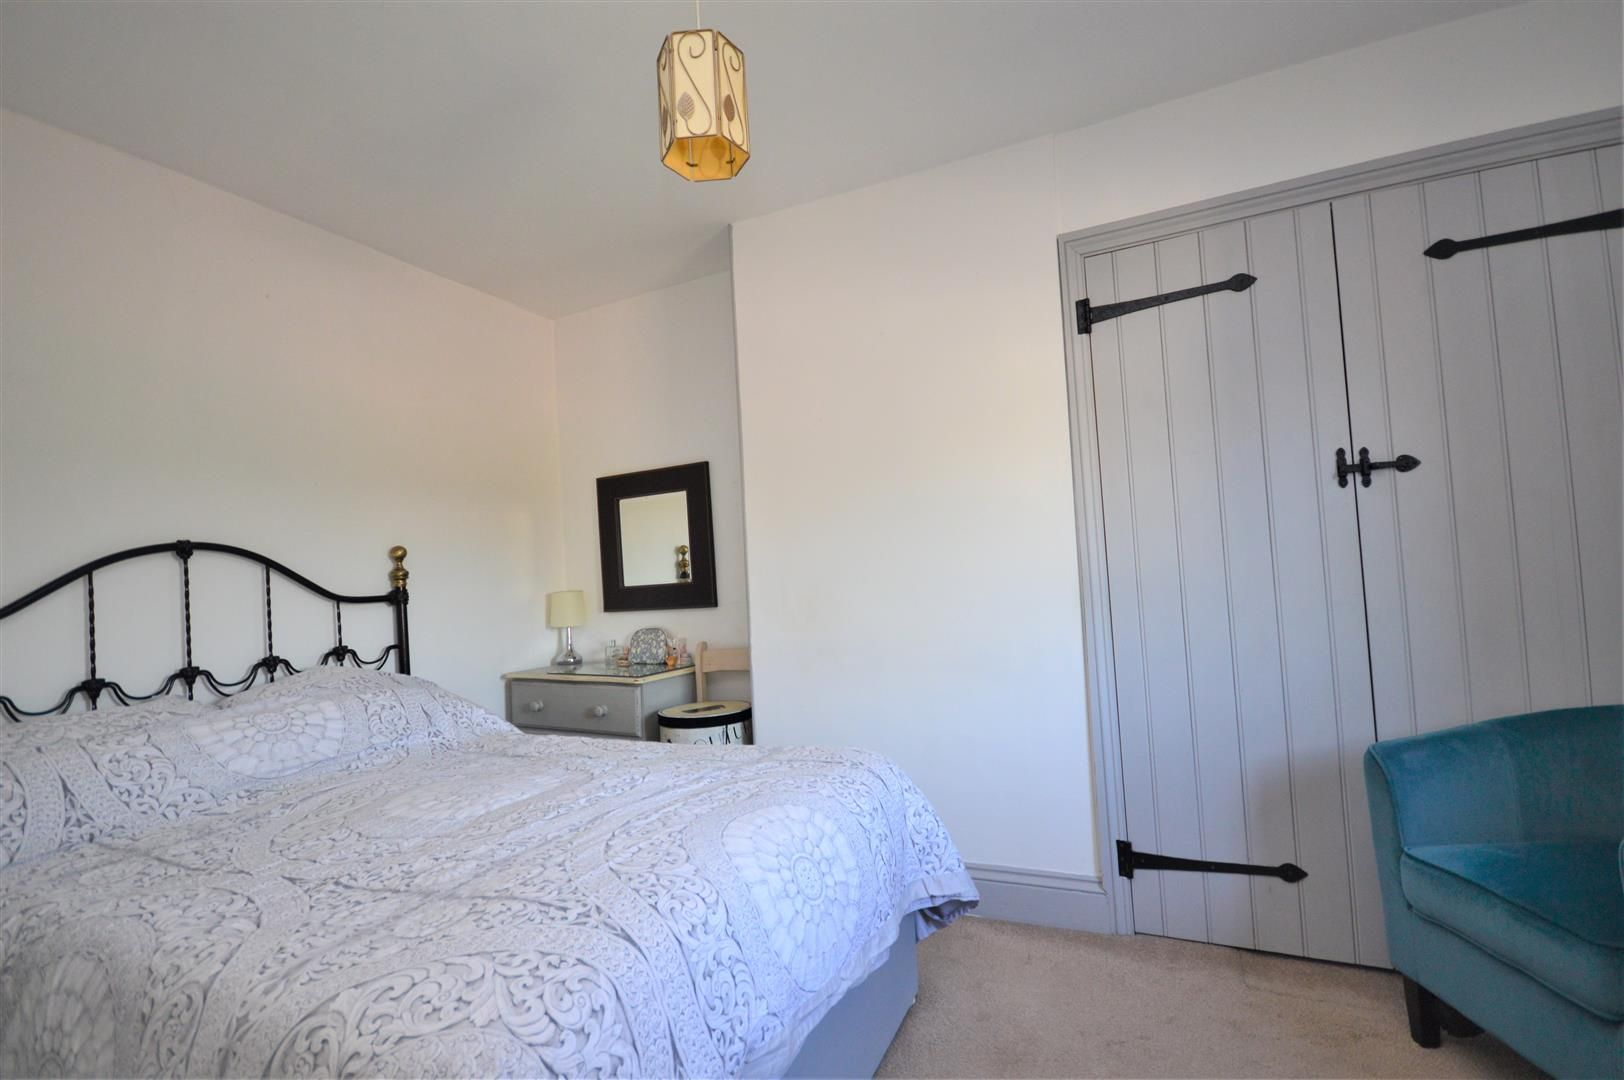 1 bed end-of-terrace for sale in Callow 7